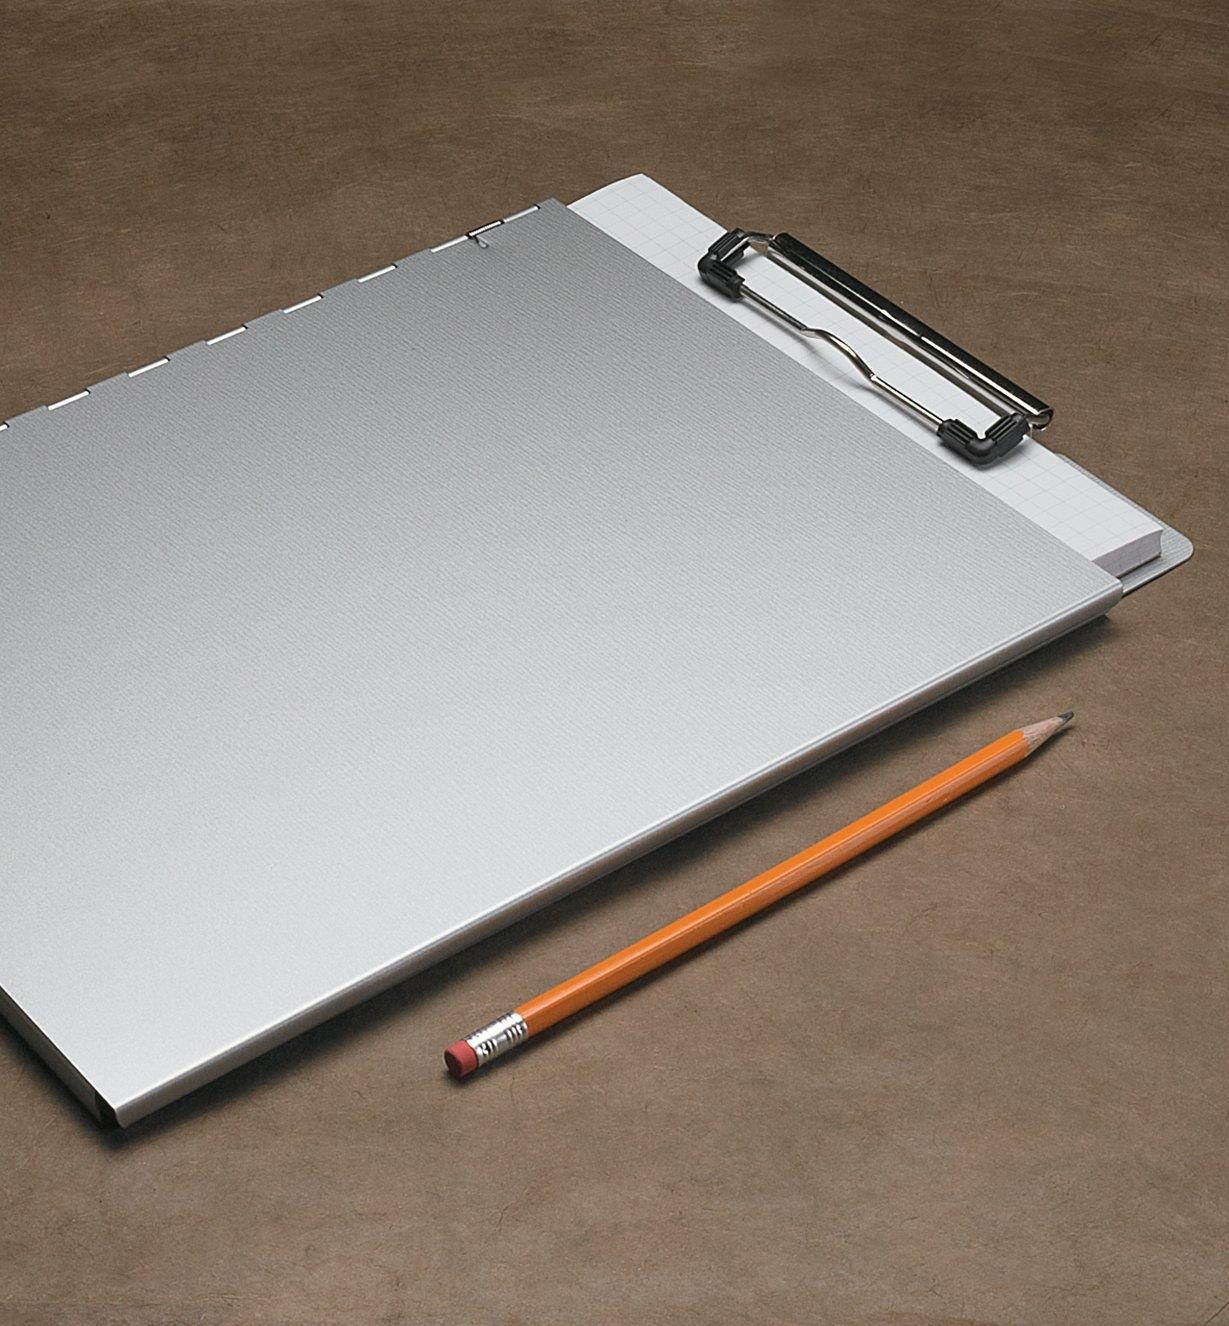 Portfolio Clipboard with pad of paper inside and cover closed overtop